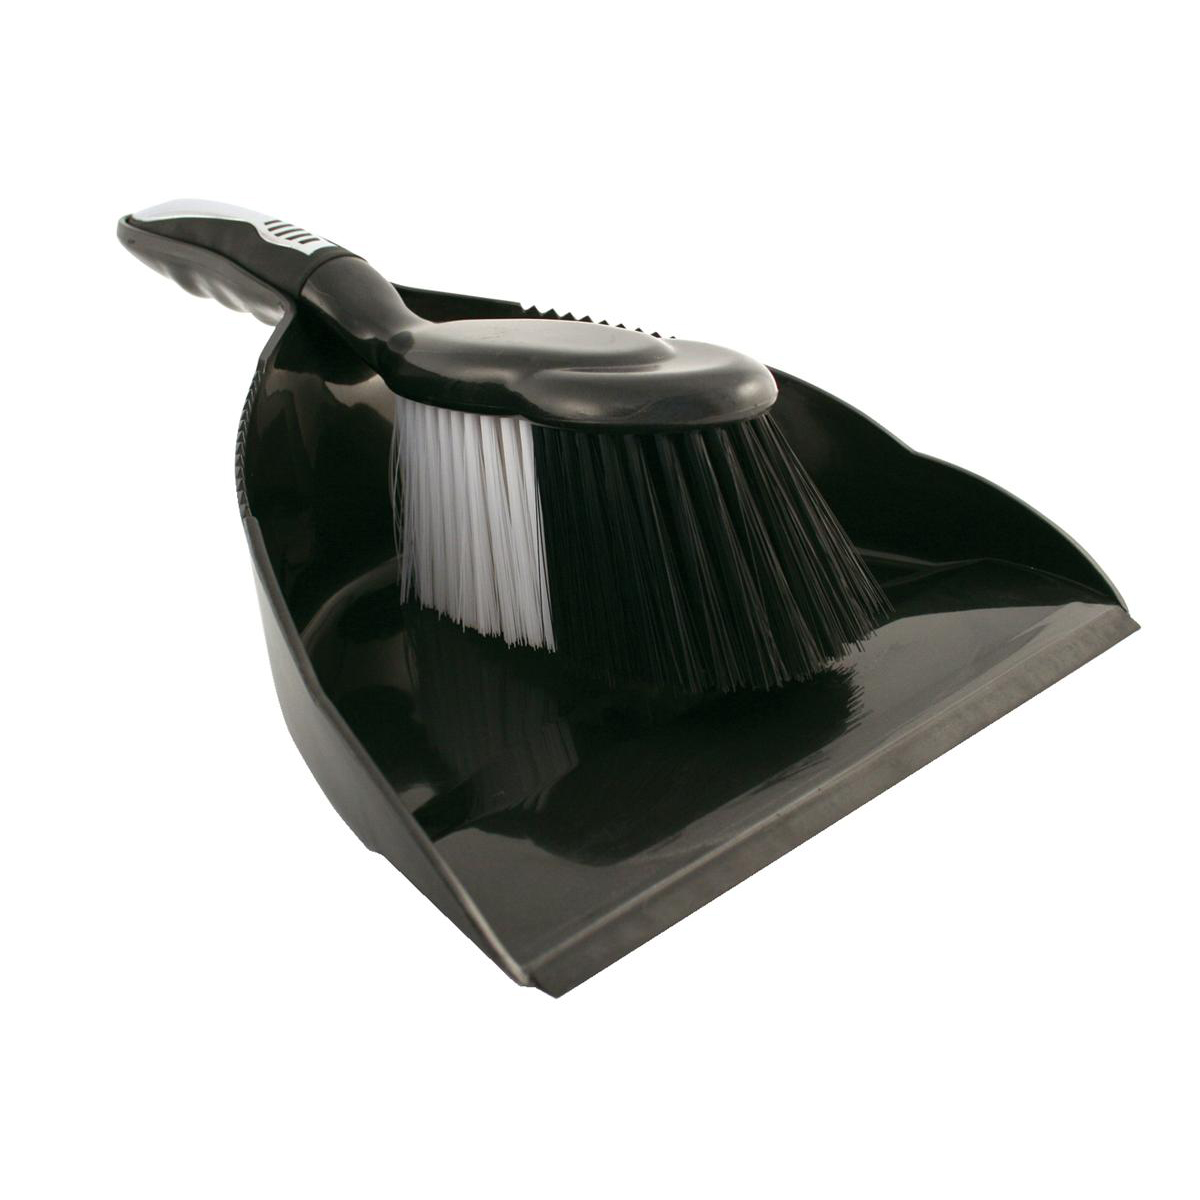 Dust brushes or pans Bentley Dustpan and Brush Set Black and Chrome Ref HL8001/G SET